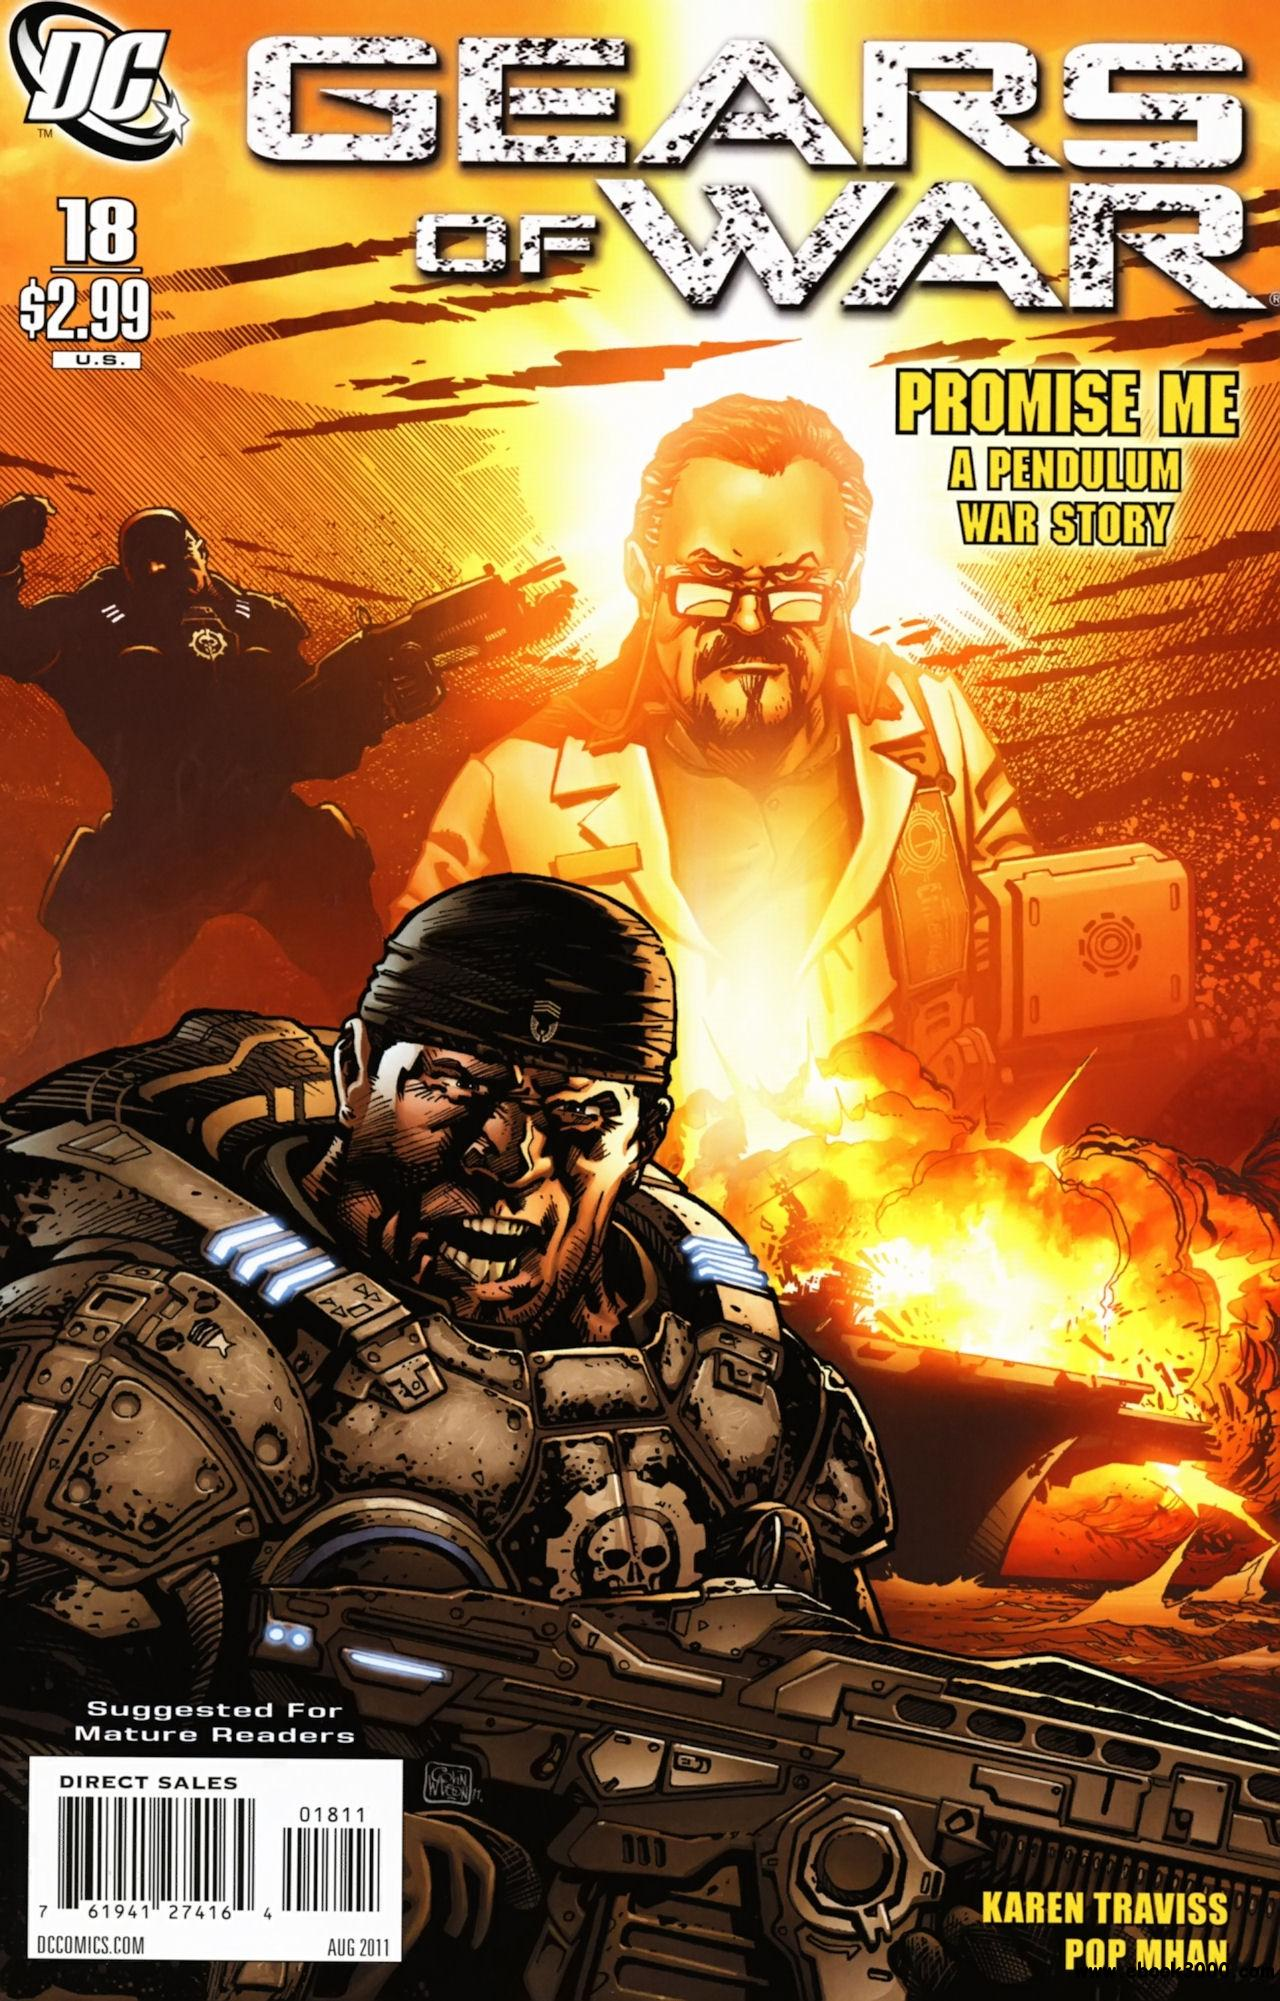 Gears of War #18 (2011) free download